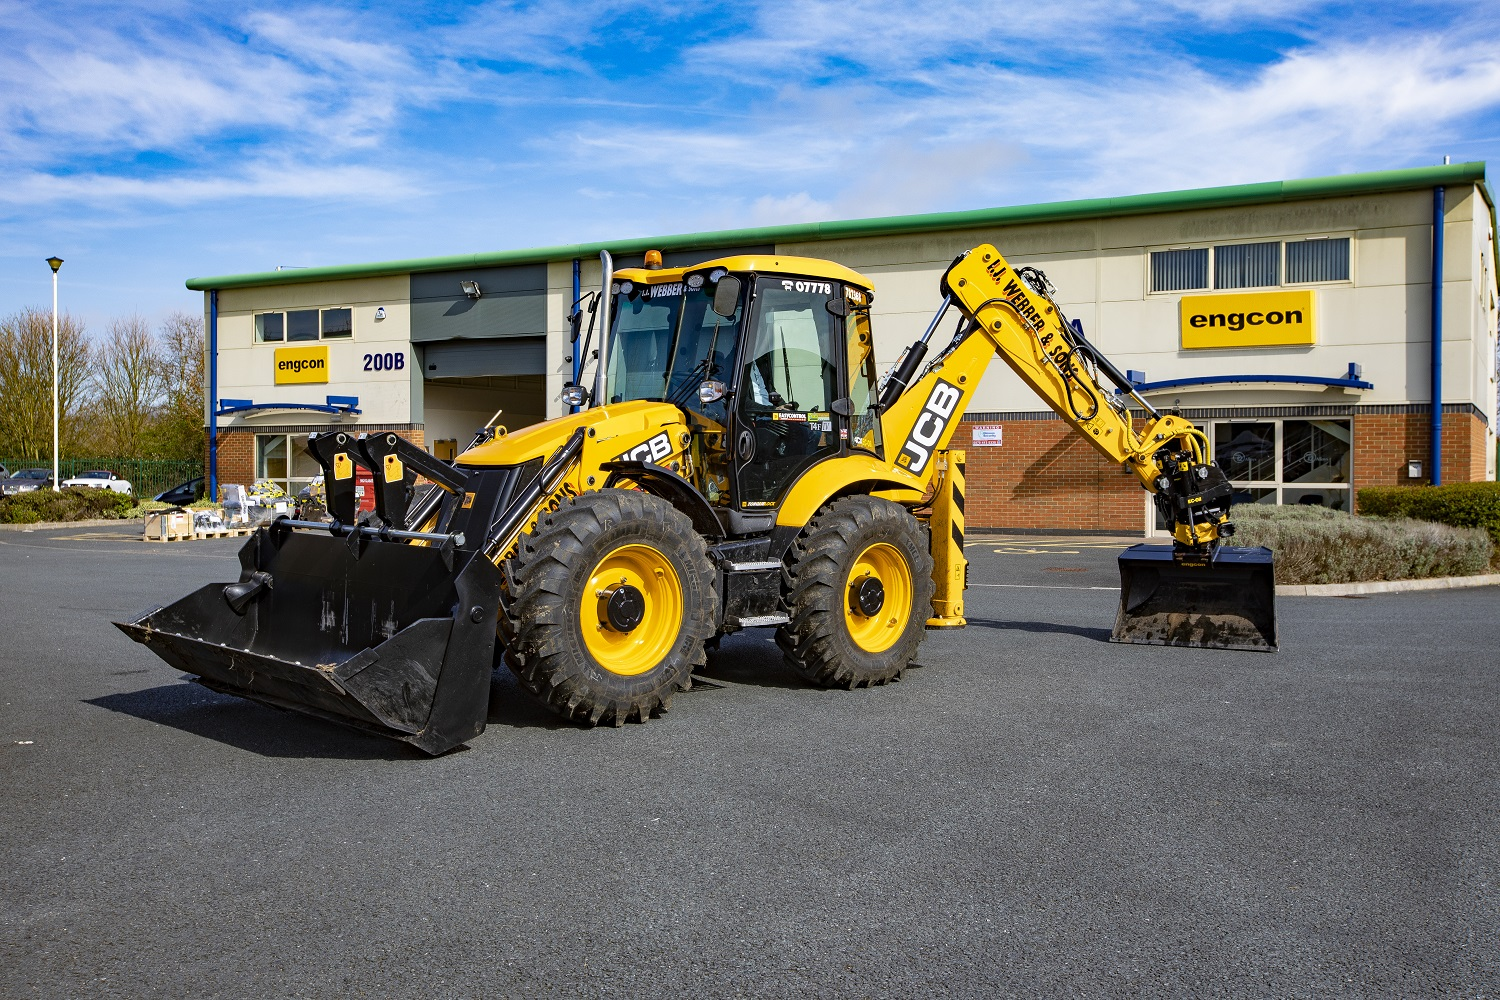 JCB 4CX with engcon Tiltrotator